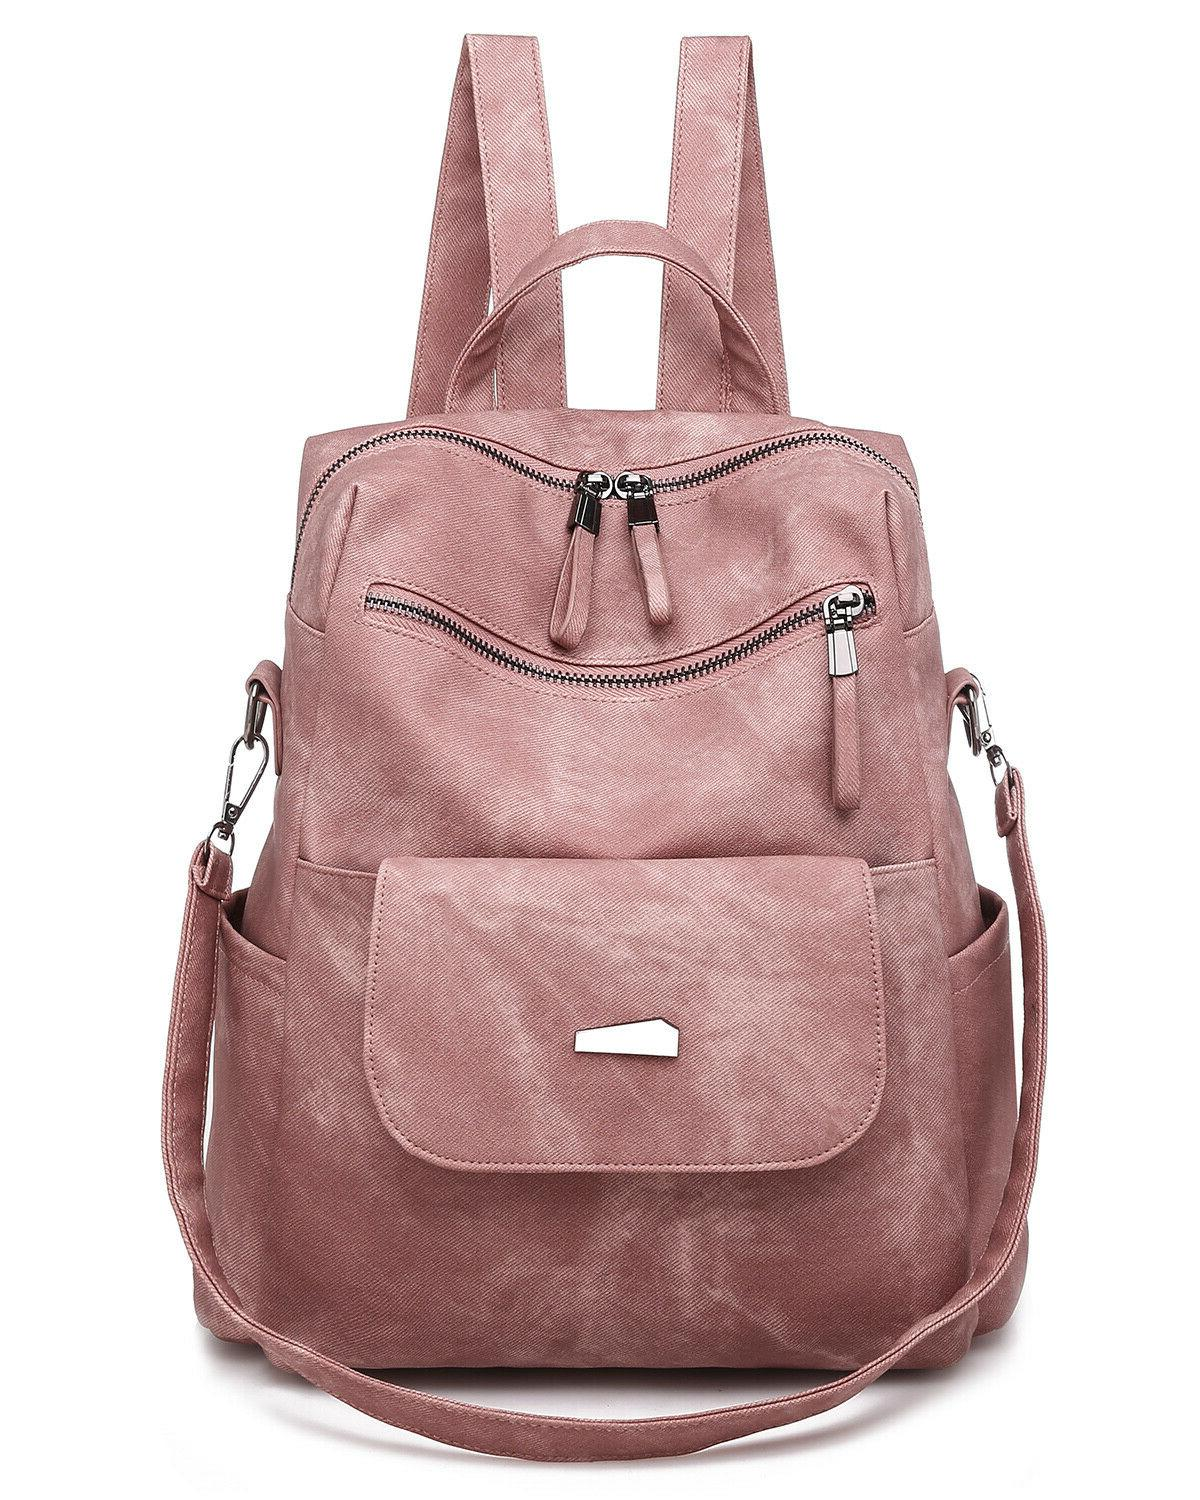 Fashion Leather Backpack Purse Casual Shopping Convertible T